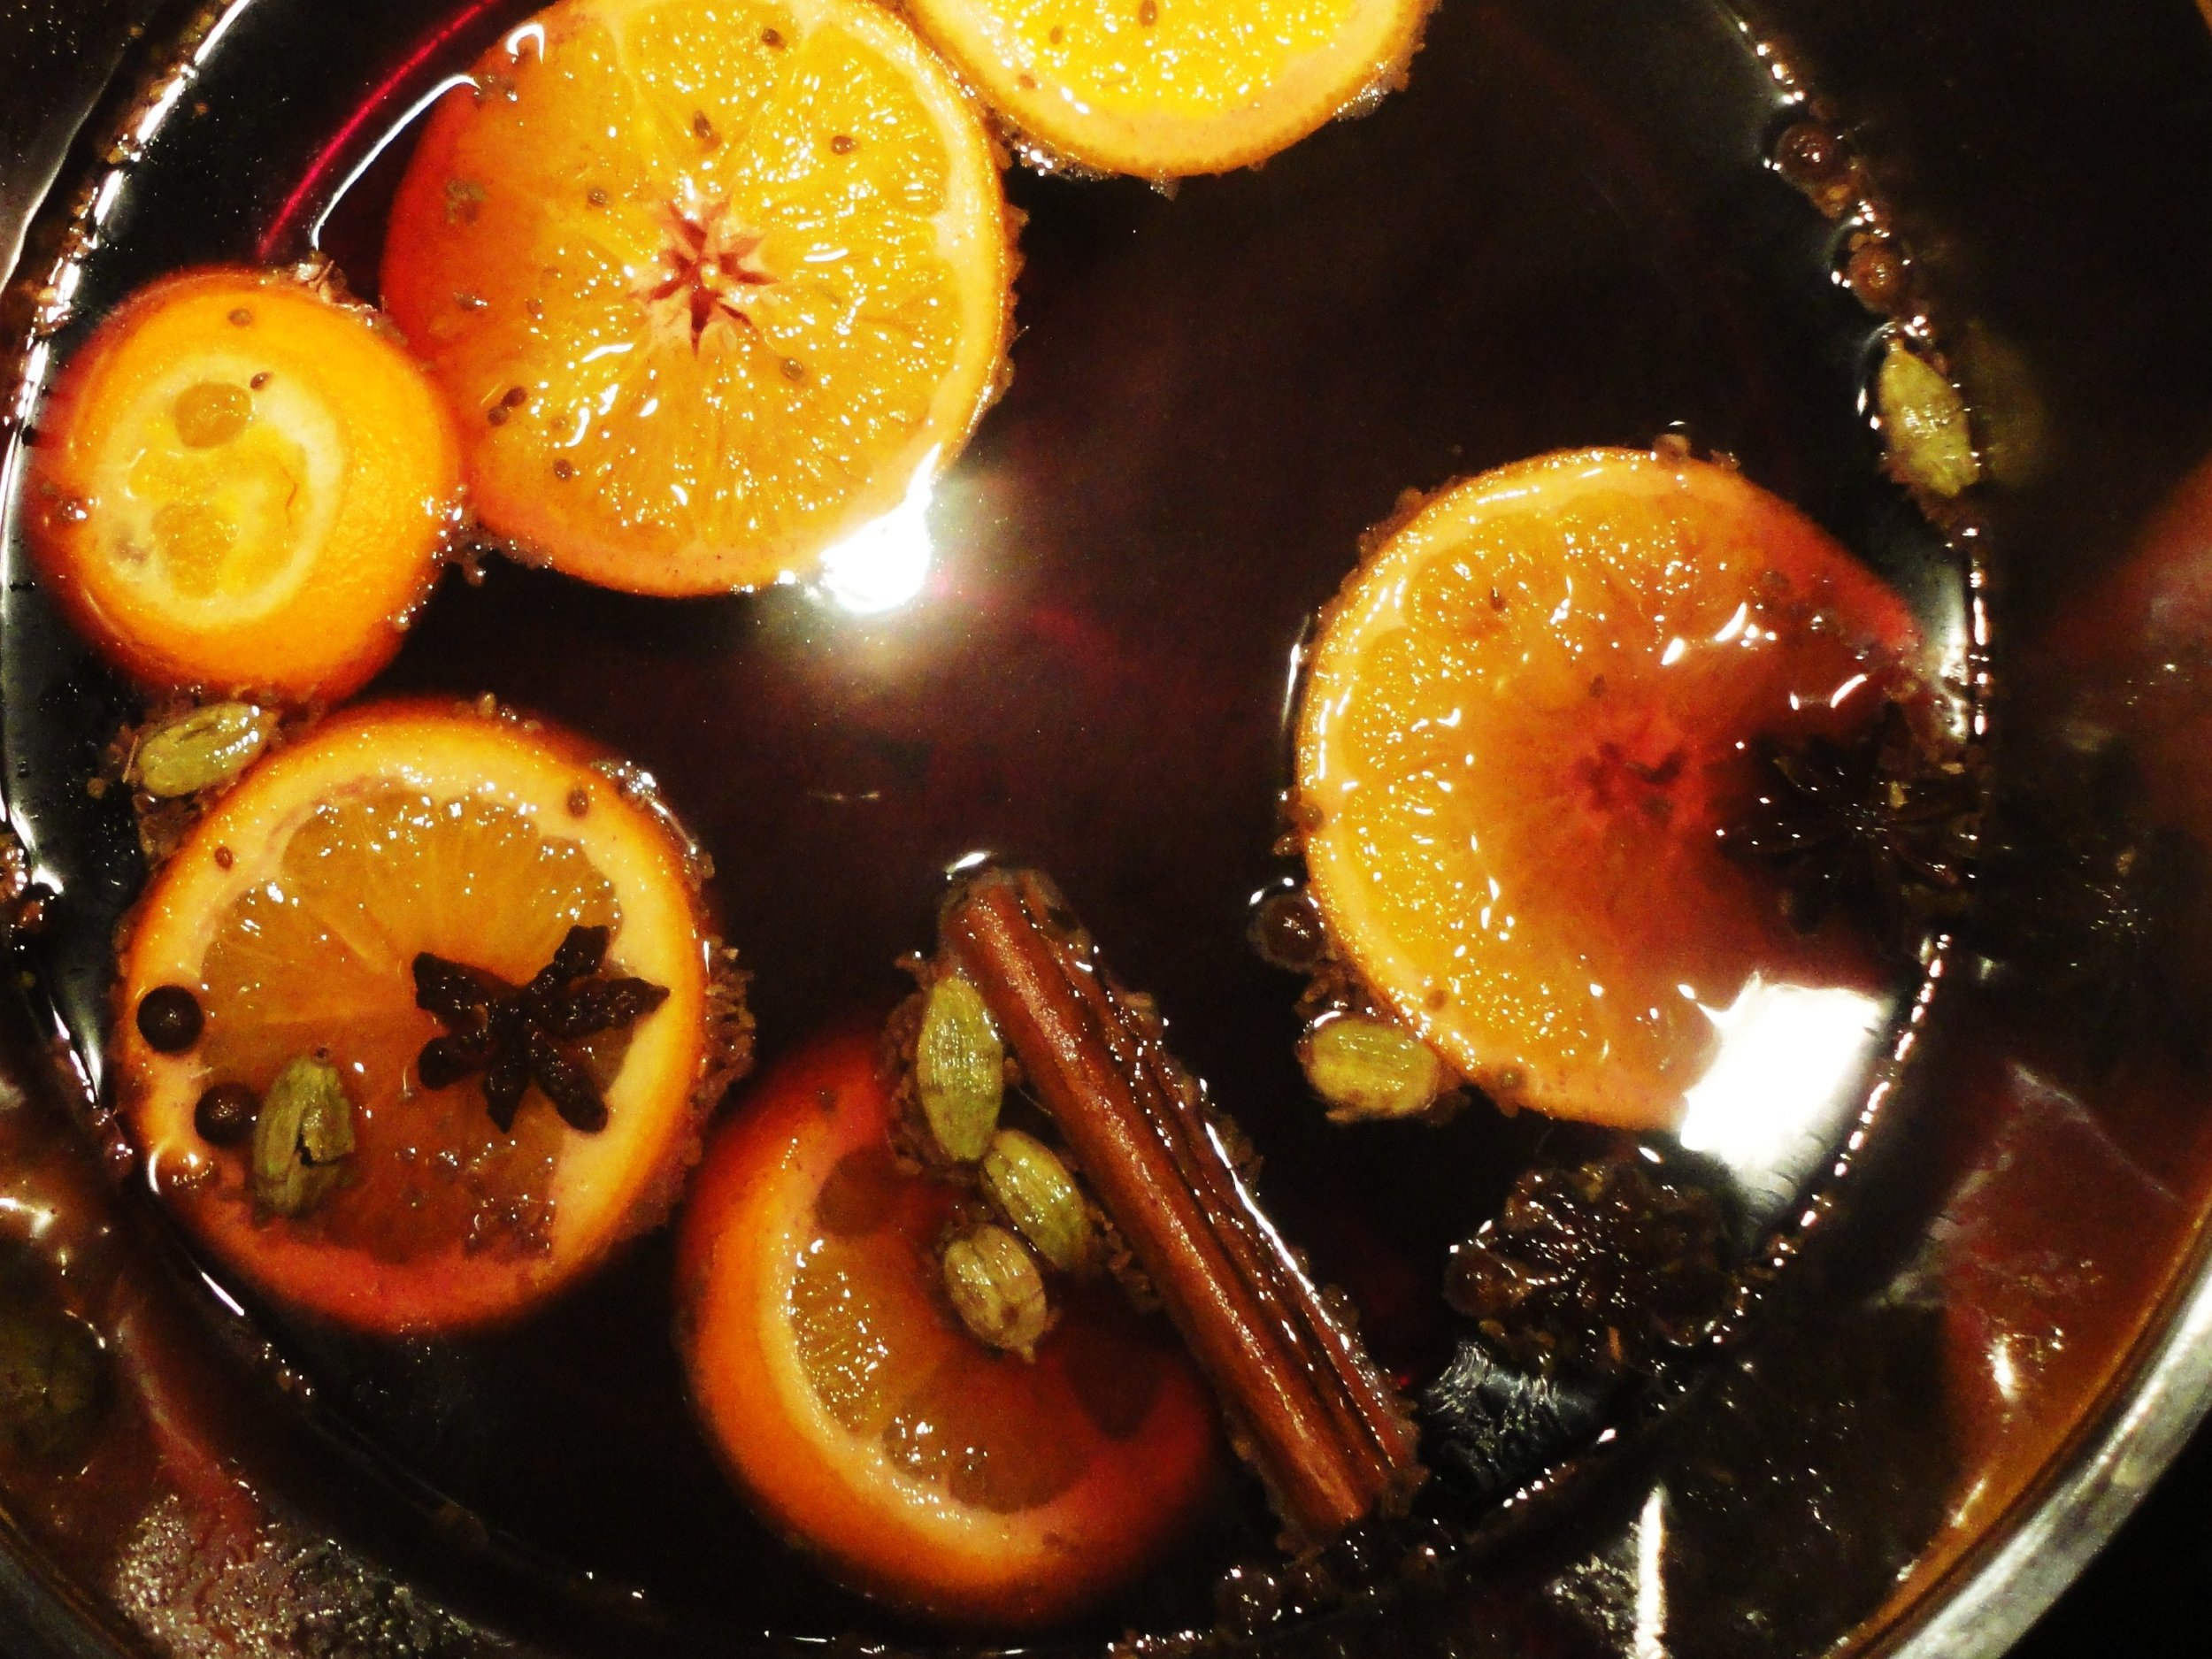 A pot of wassail bubbling on the stove.